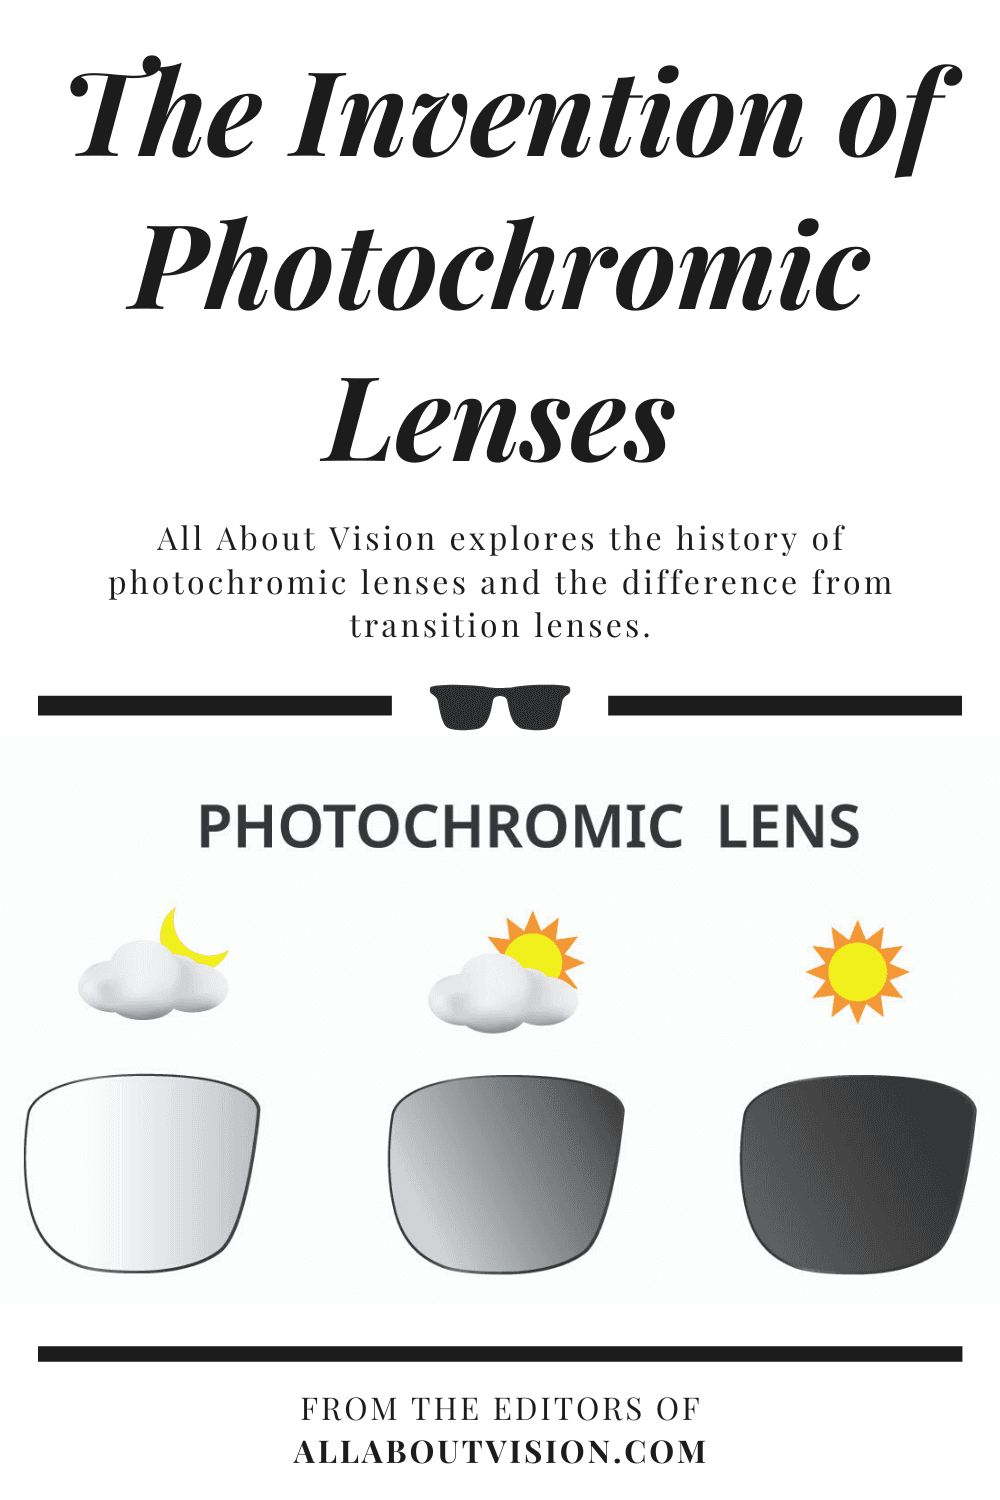 illustration of photochromic lenses transitioning from light to dark